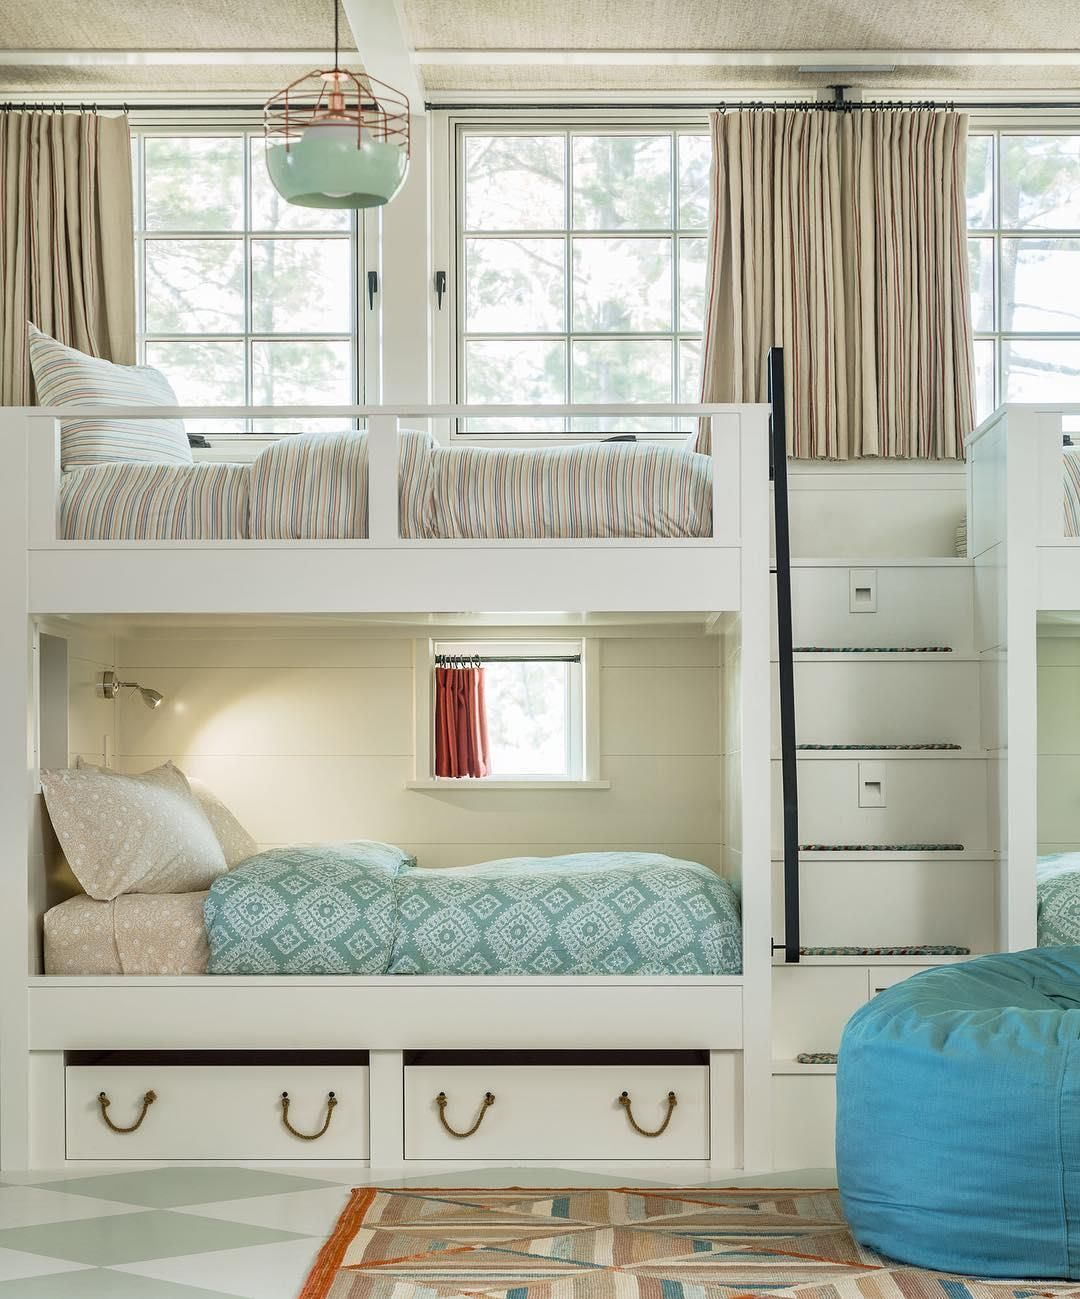 Kids Bunk Beds in Lake House at Sunapee, NH